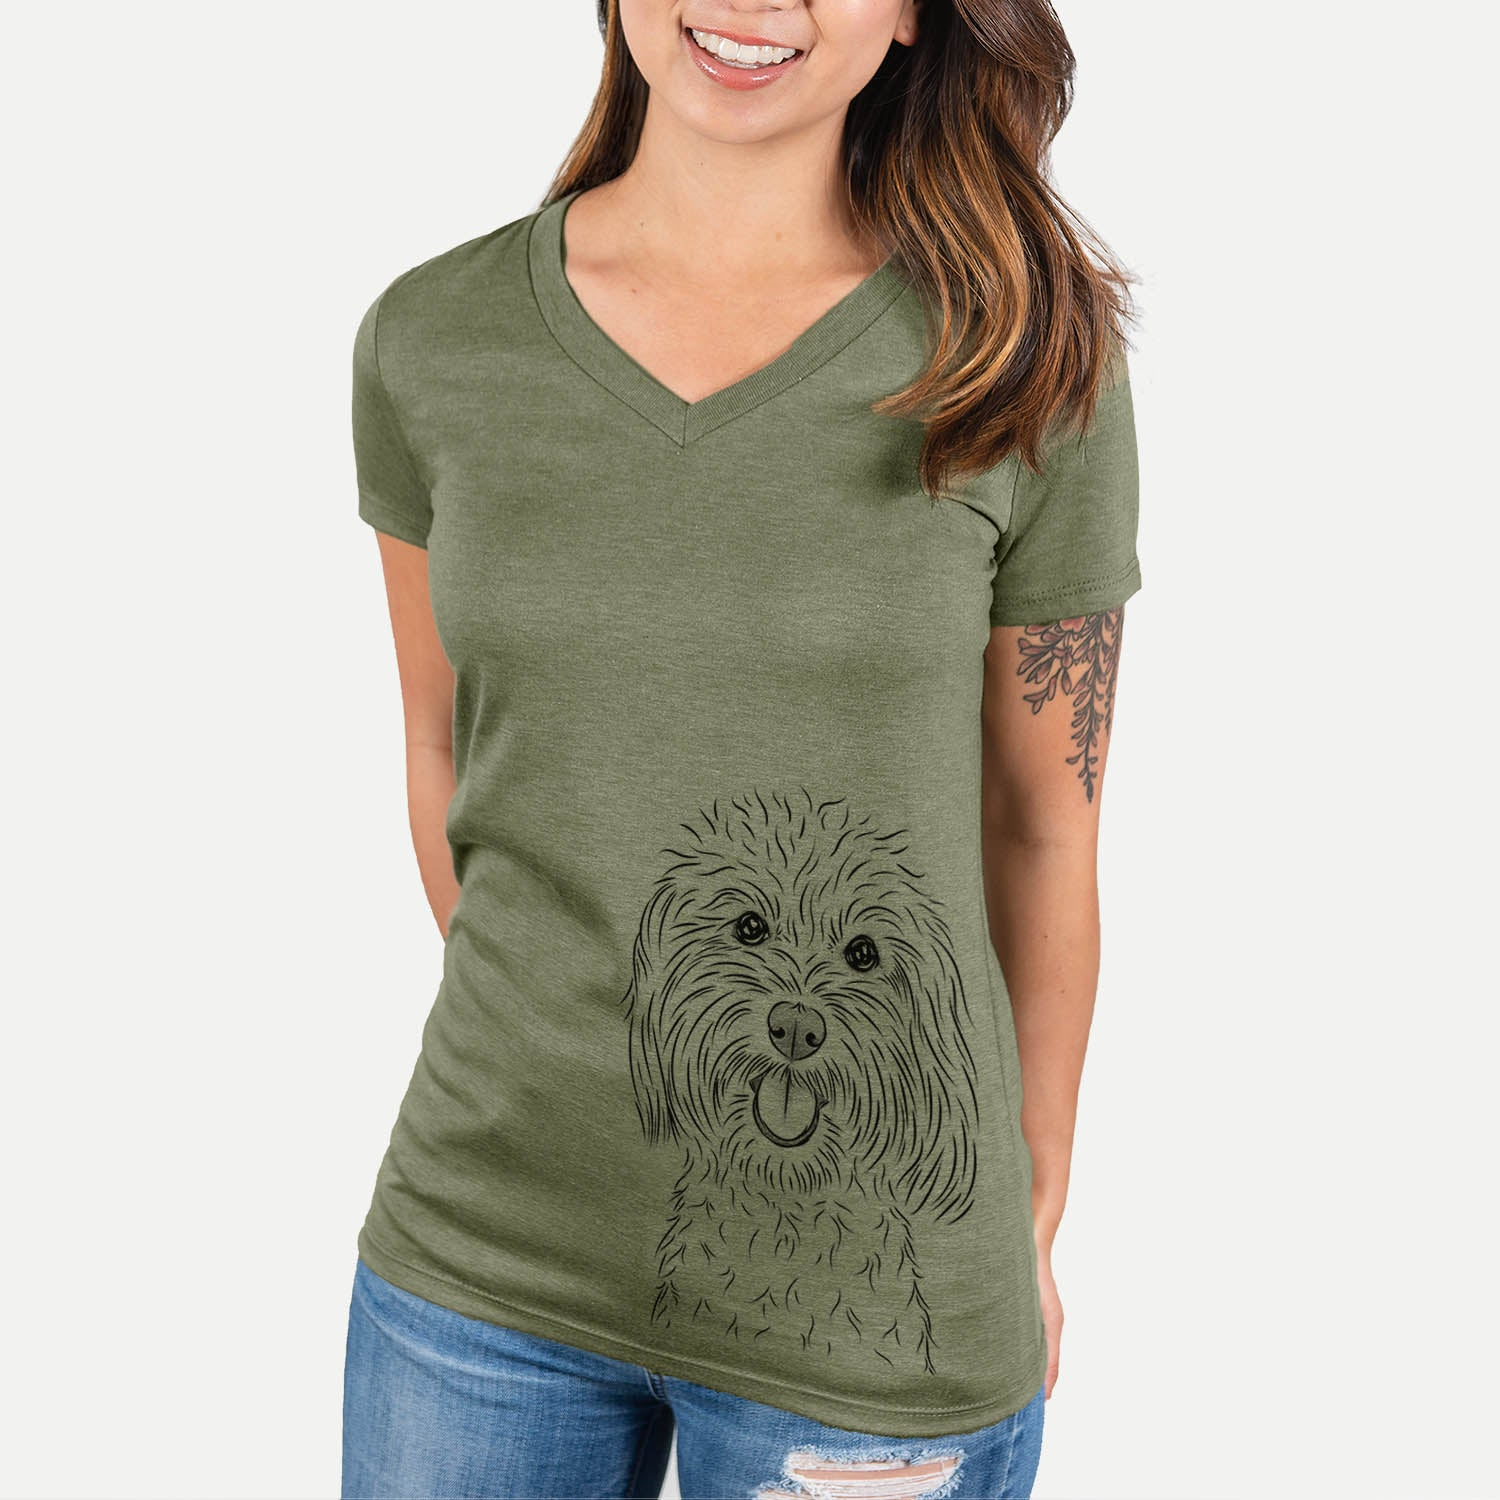 Cuddles the Coton de Tulear - Women's Modern Fit V-neck Shirt